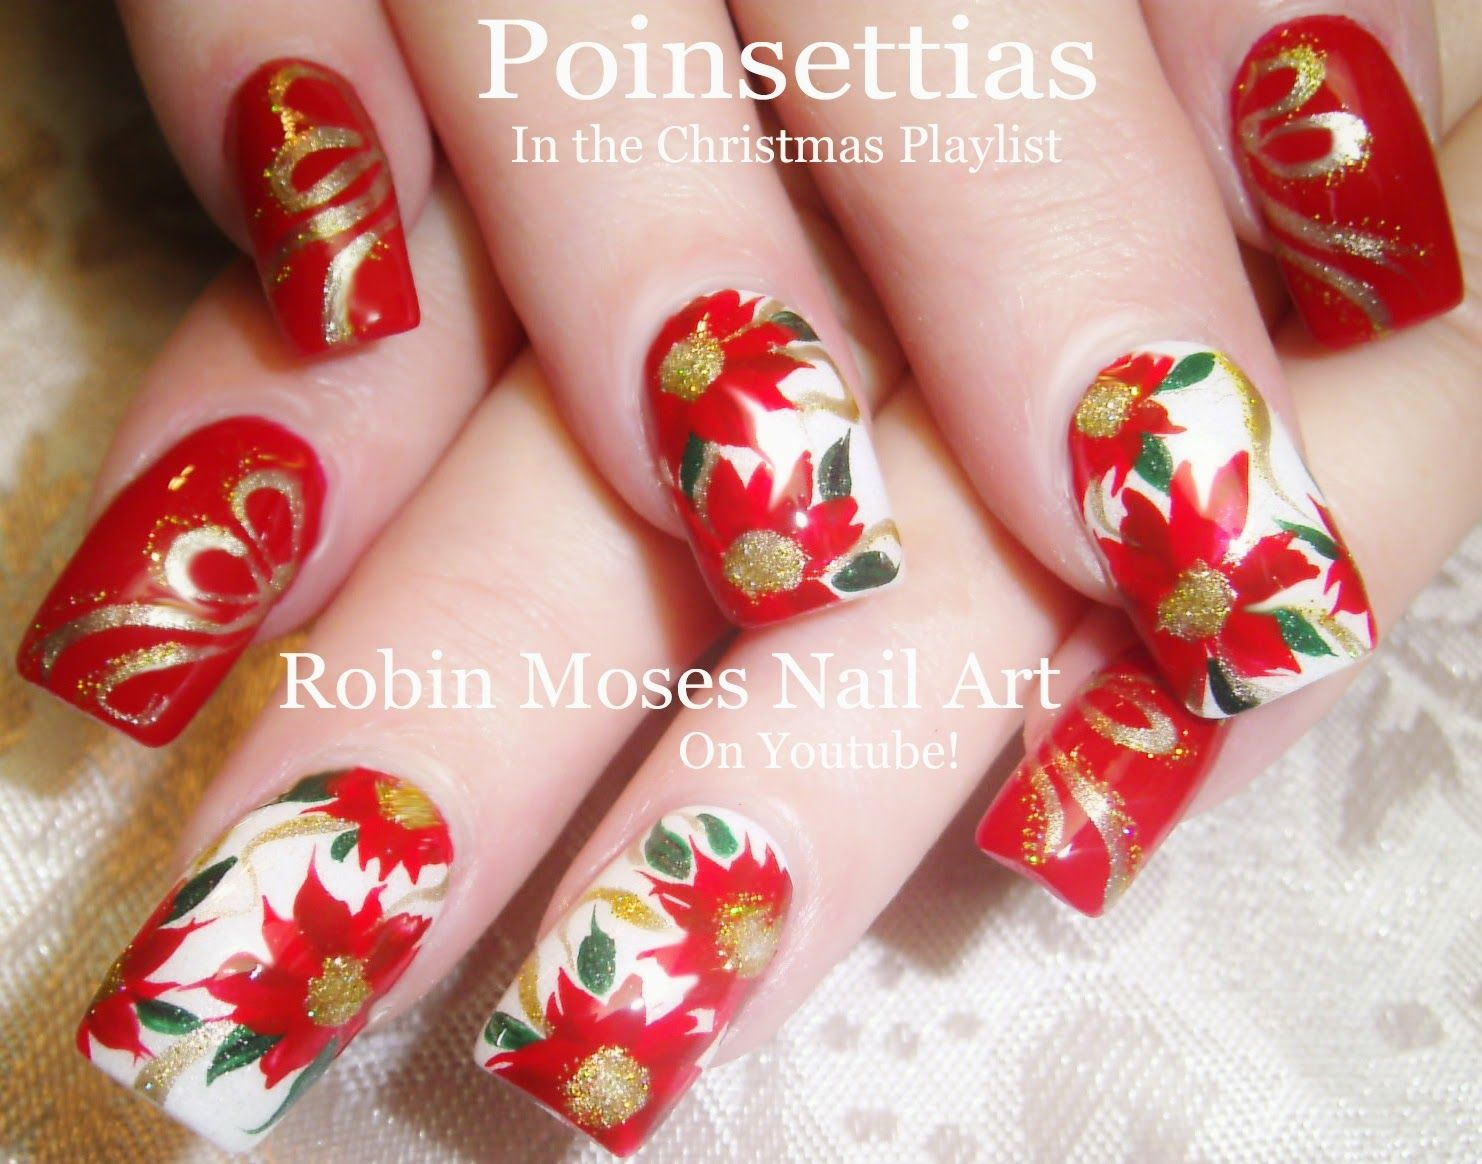 Pink christmas nails google search nail design favorites nail art tutorials for easy nail art design to advanced nail art for any instructor or shop owner here is a lovely christmas poinsettia nail art design tu prinsesfo Image collections